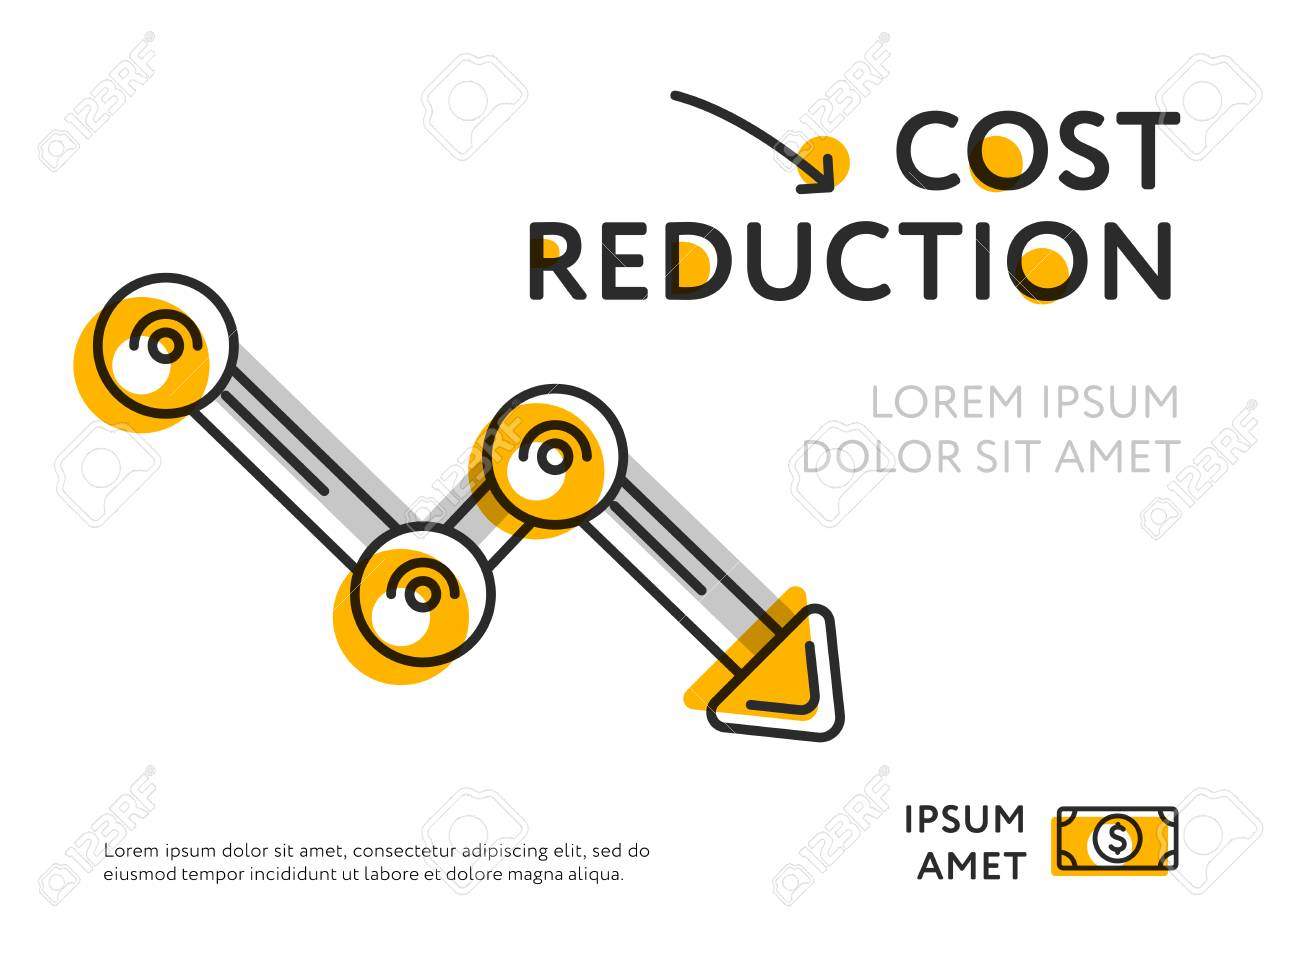 Flat design of minimalist graph showing cost reduction isolated on white. - 98970128